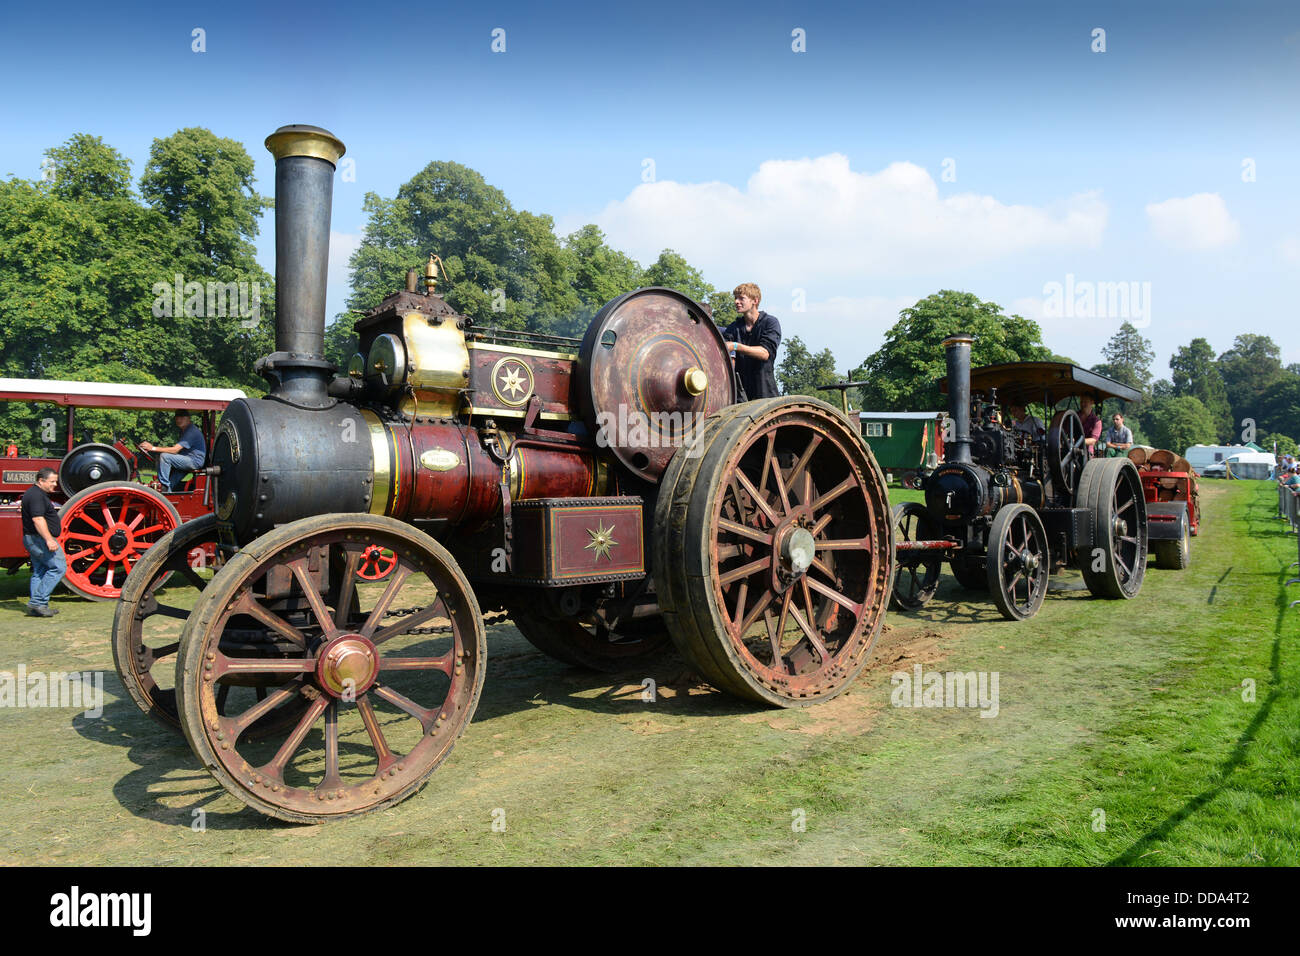 1919 Fowler Showman's steam engine at Shrewsbury Steam Rally 2013 - Stock Image